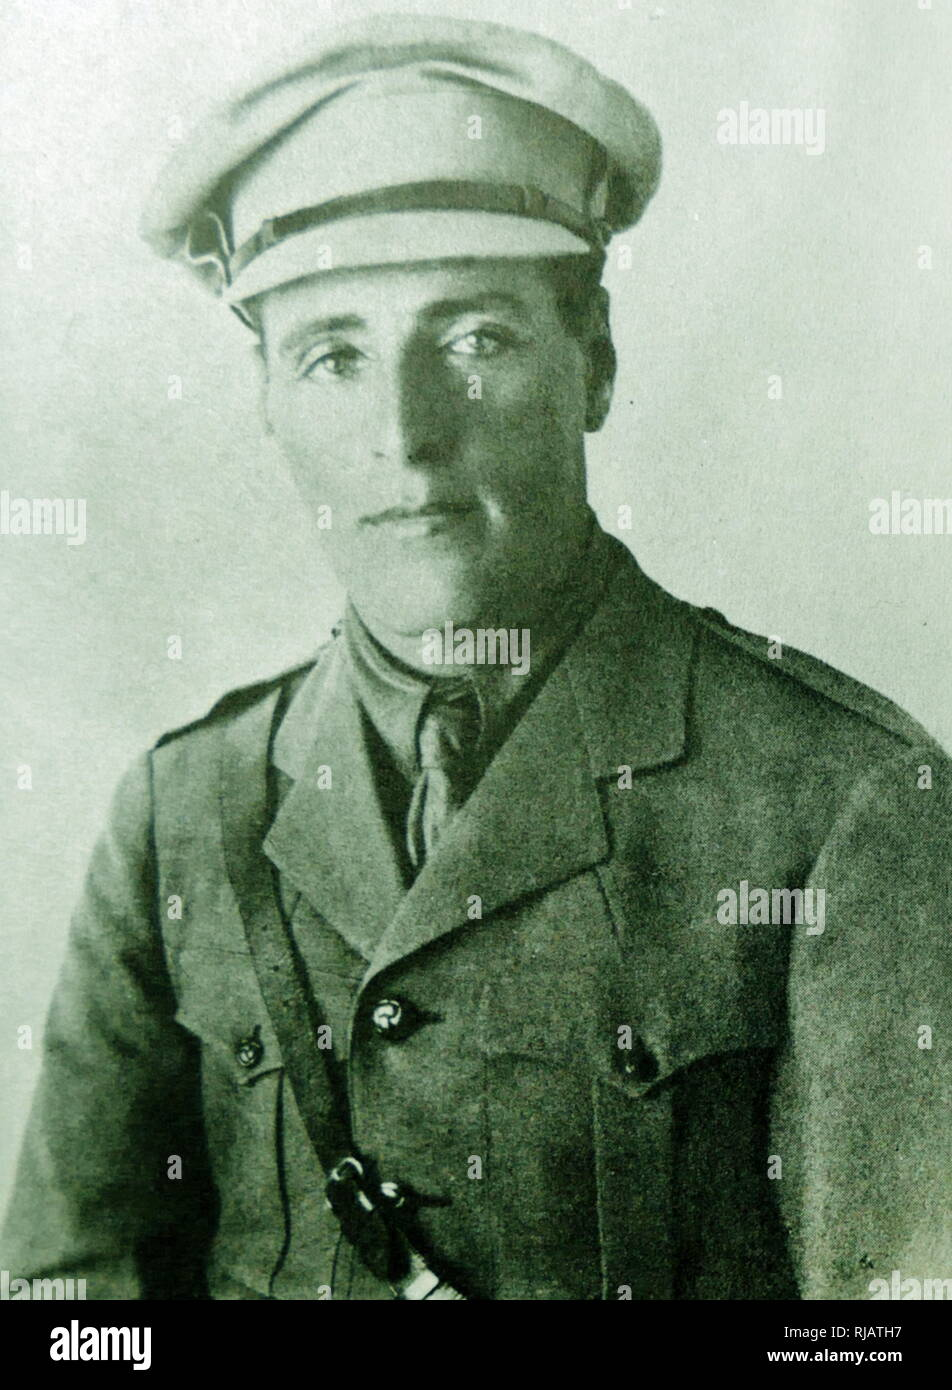 Joseph Trumpeldor formed the 650-strong Zion Mule Corps, of whom 562 were sent to the Gallipoli front in World War One. Joseph Trumpeldor (1880 - 1920)  was an early Zionist activist and war hero. He helped organize the Zion Mule Corps and bring Jewish immigrants to Israel. Trumpeldor died defending the settlement of Tel Hai in 1920 and subsequently became a Zionist national hero. - Stock Image